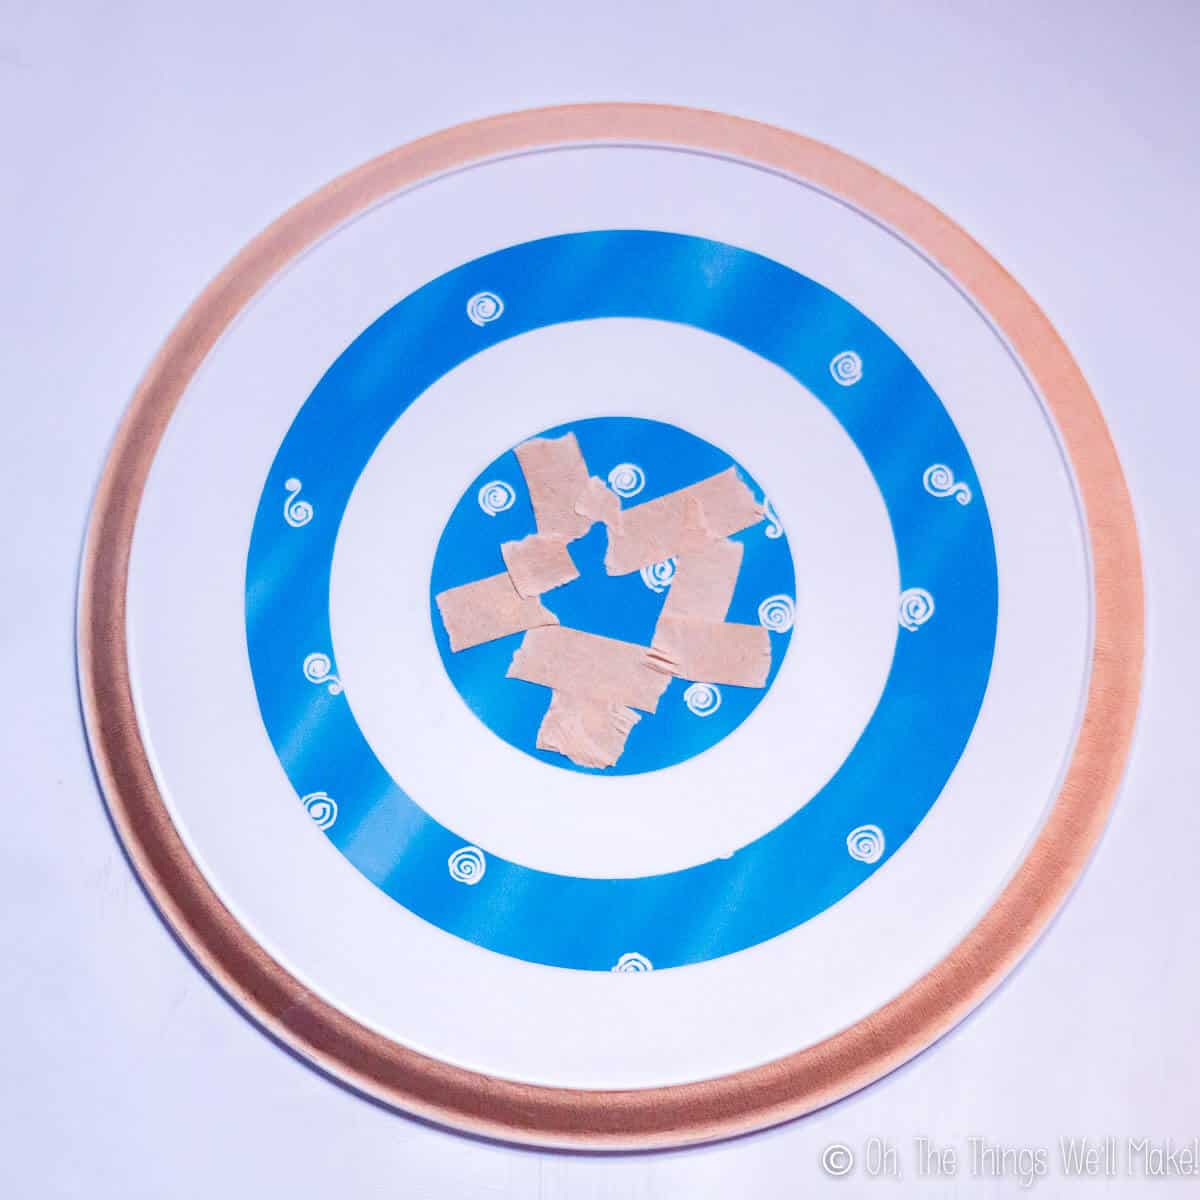 Taping off sections of a plastic tray before painting it to make it into a Captain America shield.